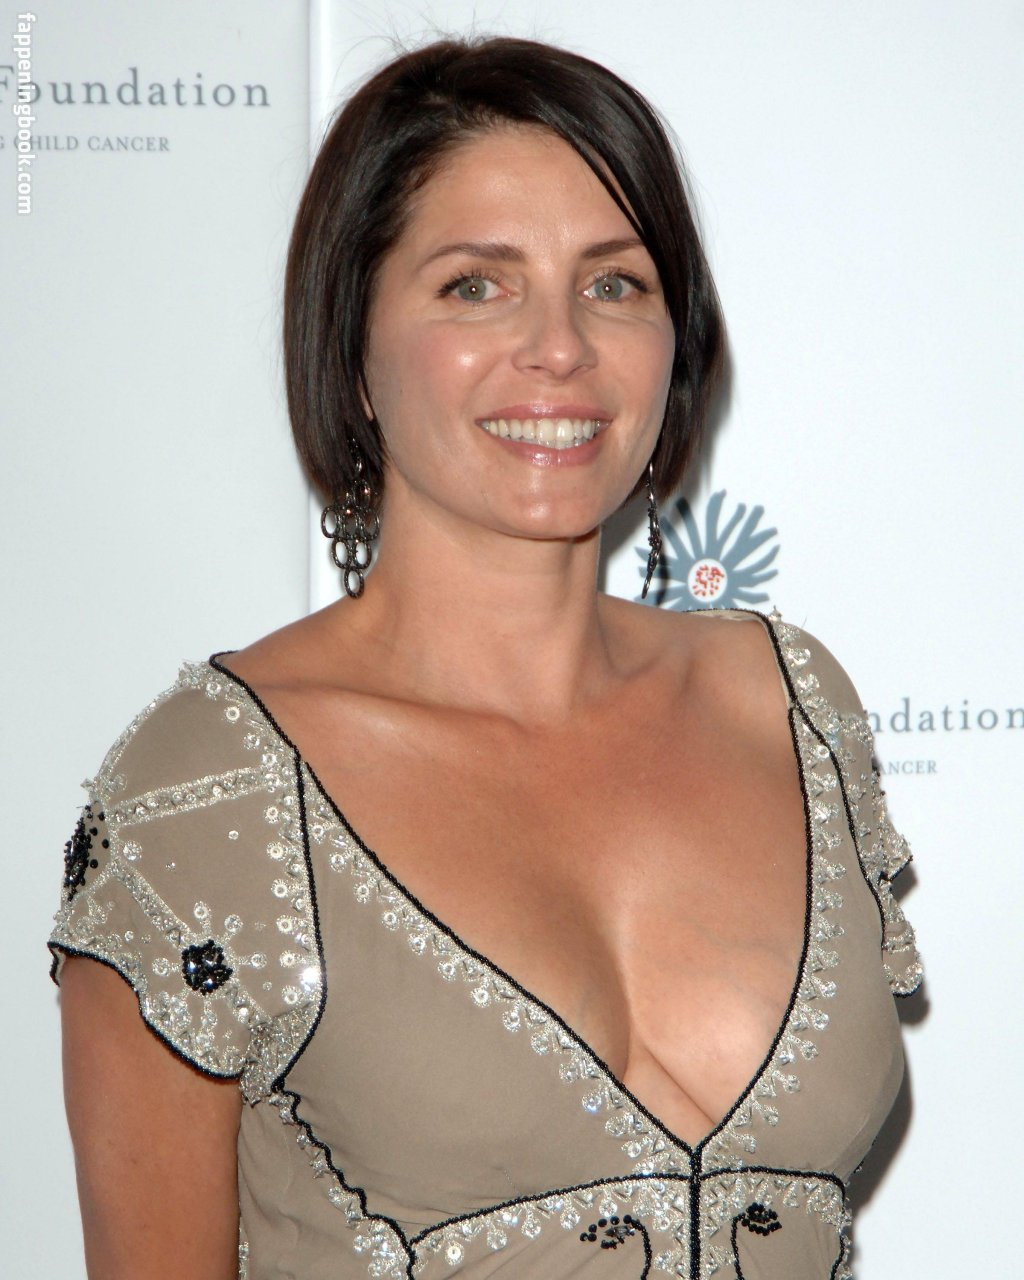 Analice Nicolau Fotos Sexy sadie frost nude, sexy, the fappening, uncensored - photo